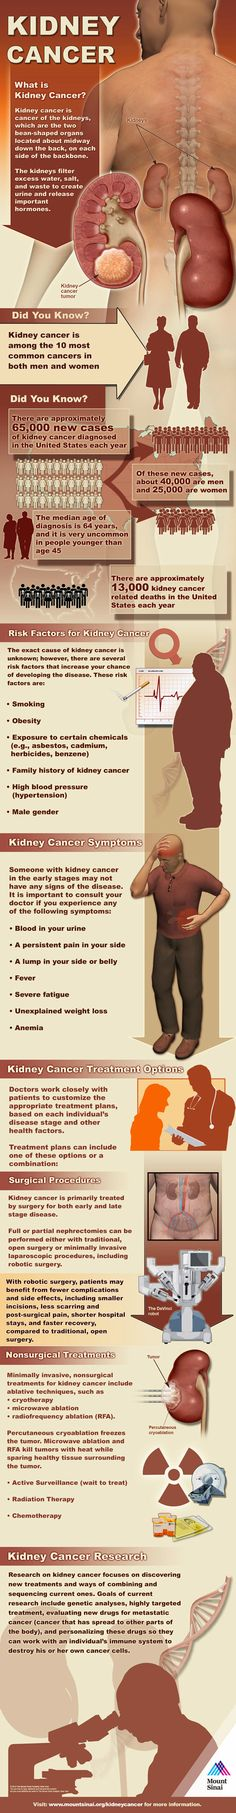 Kidney Cancer Symptoms and Treatment - Health Infographic